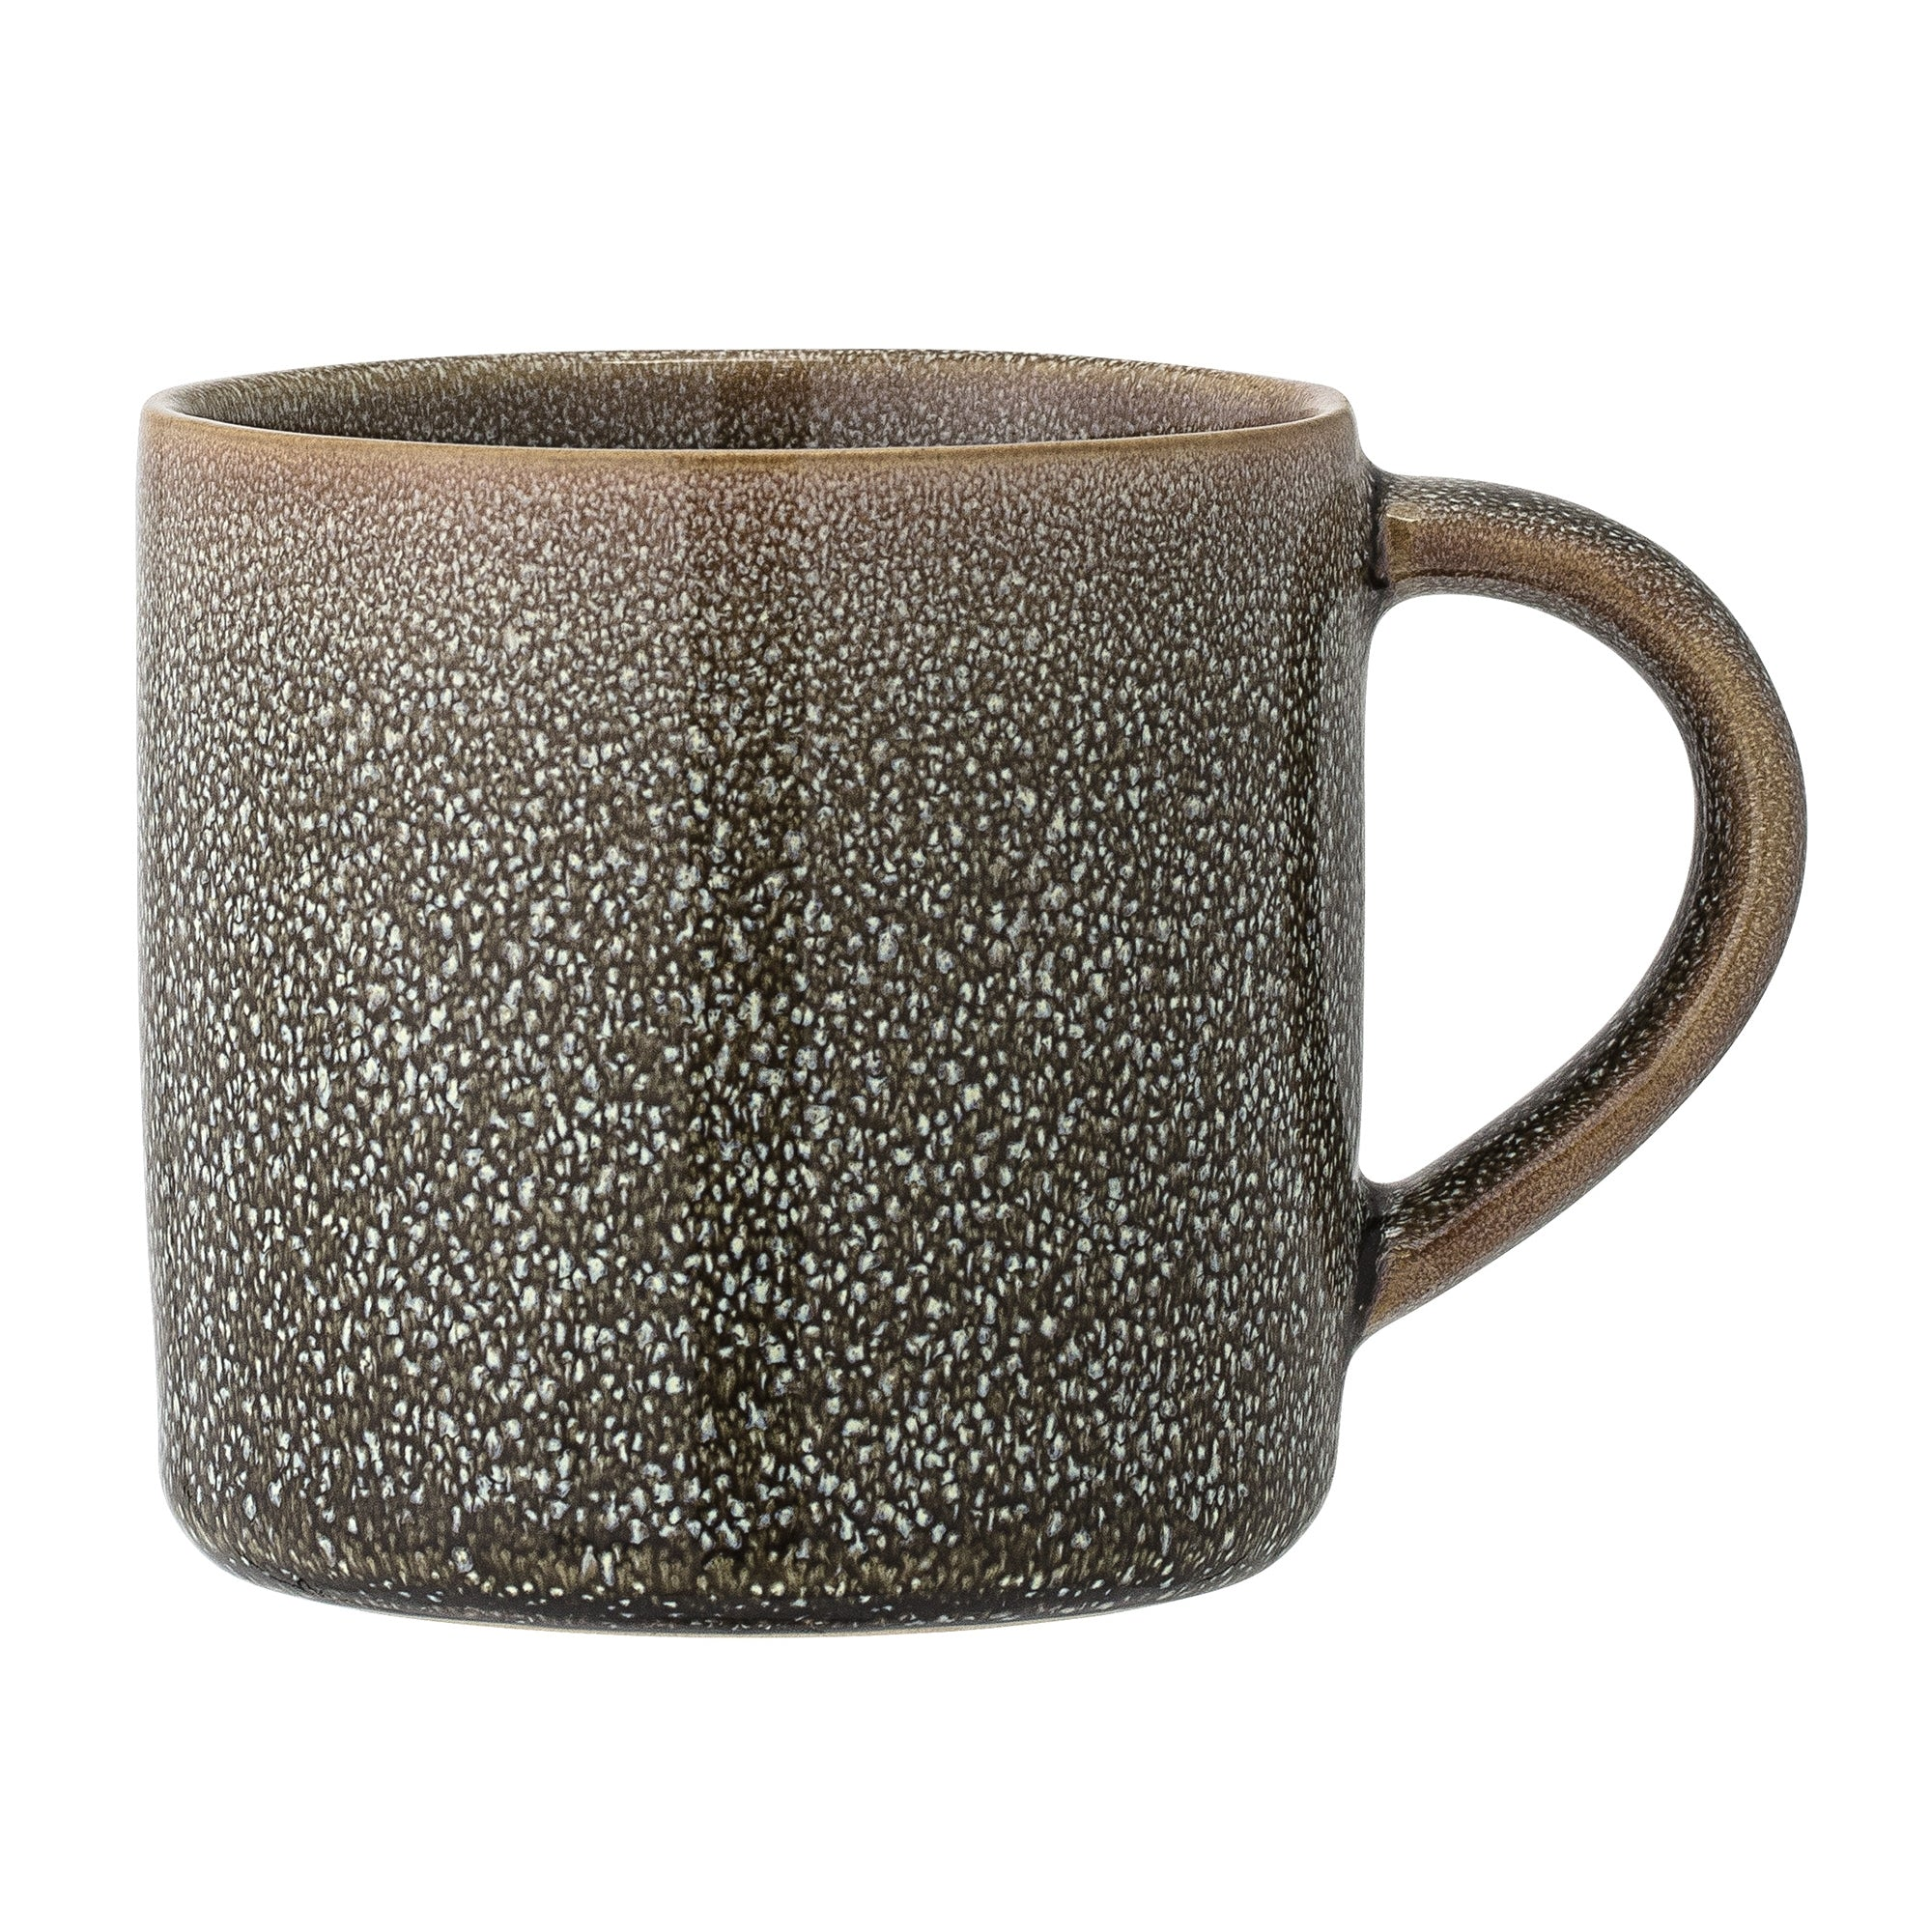 Handcrafted Stoneware Speckle Mug